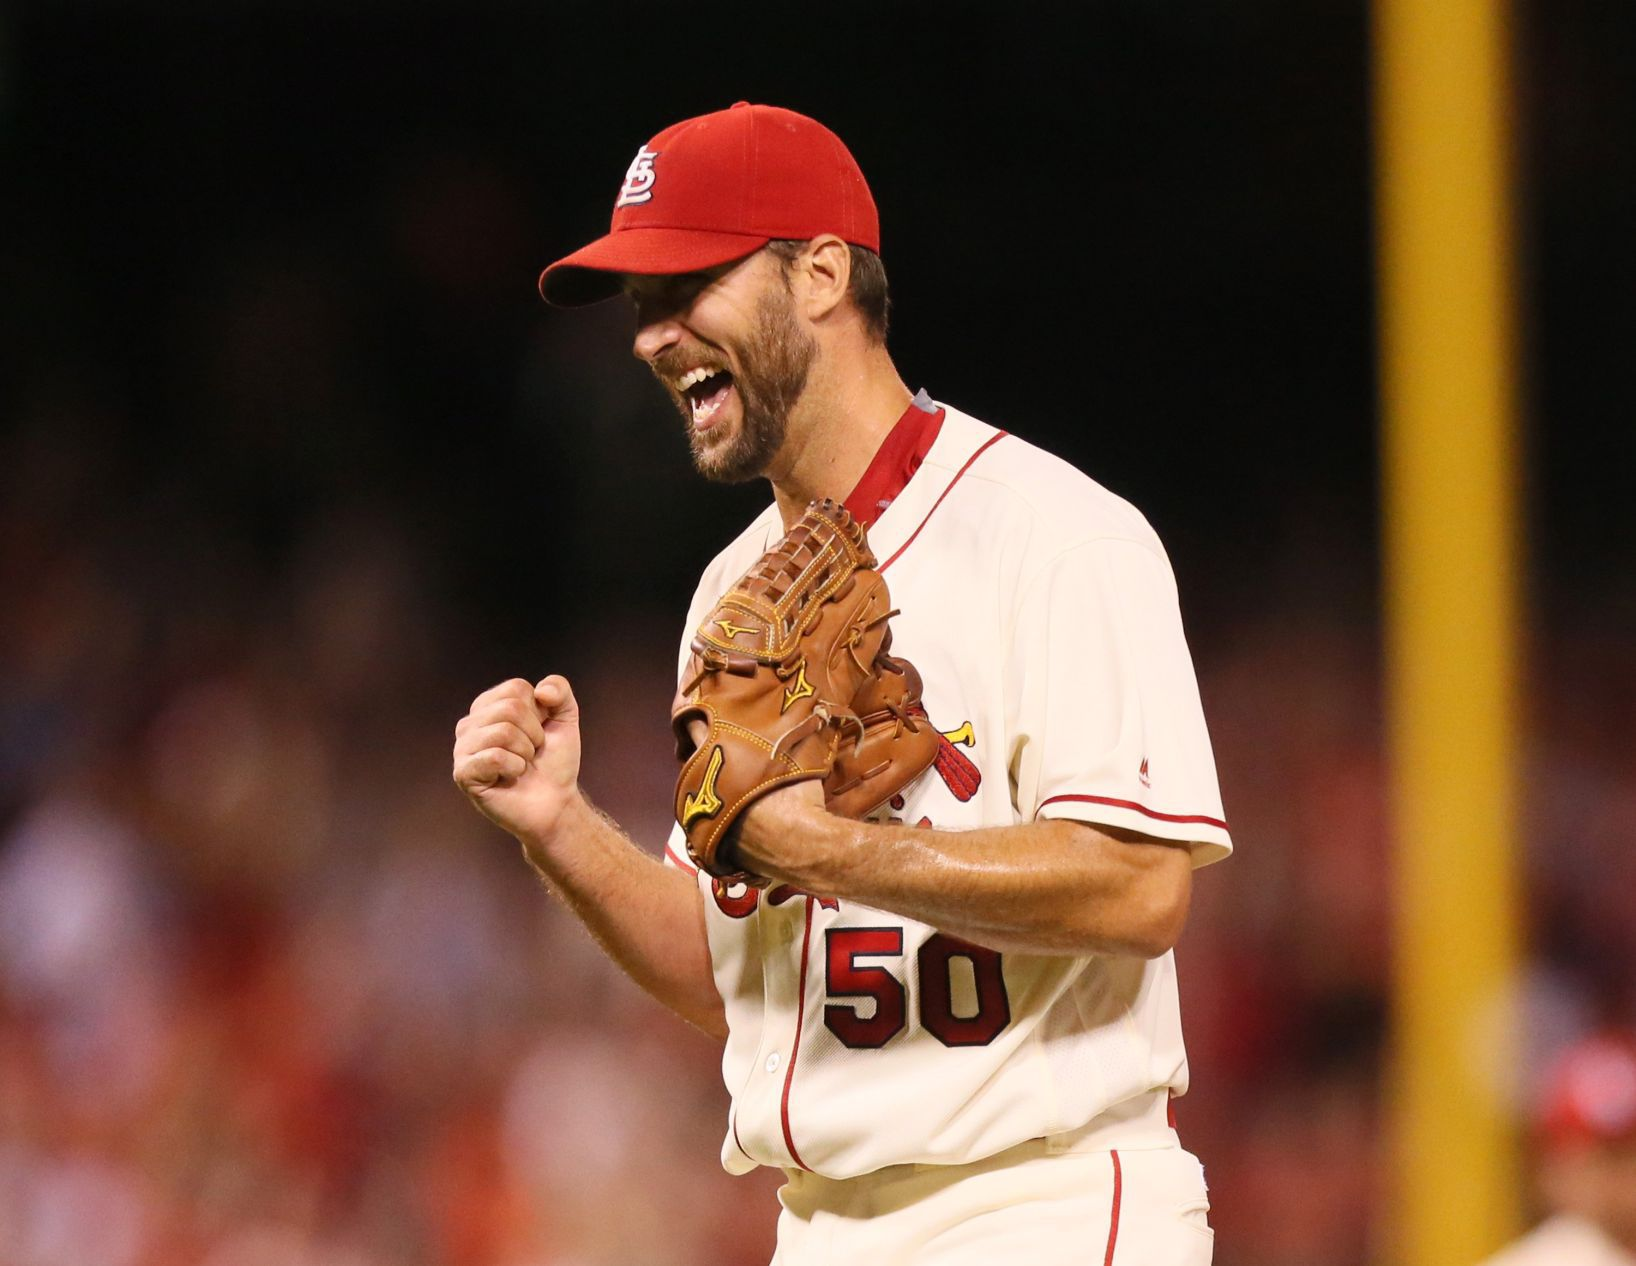 Ortiz: Just like old times as Wainwright closes out his shutout